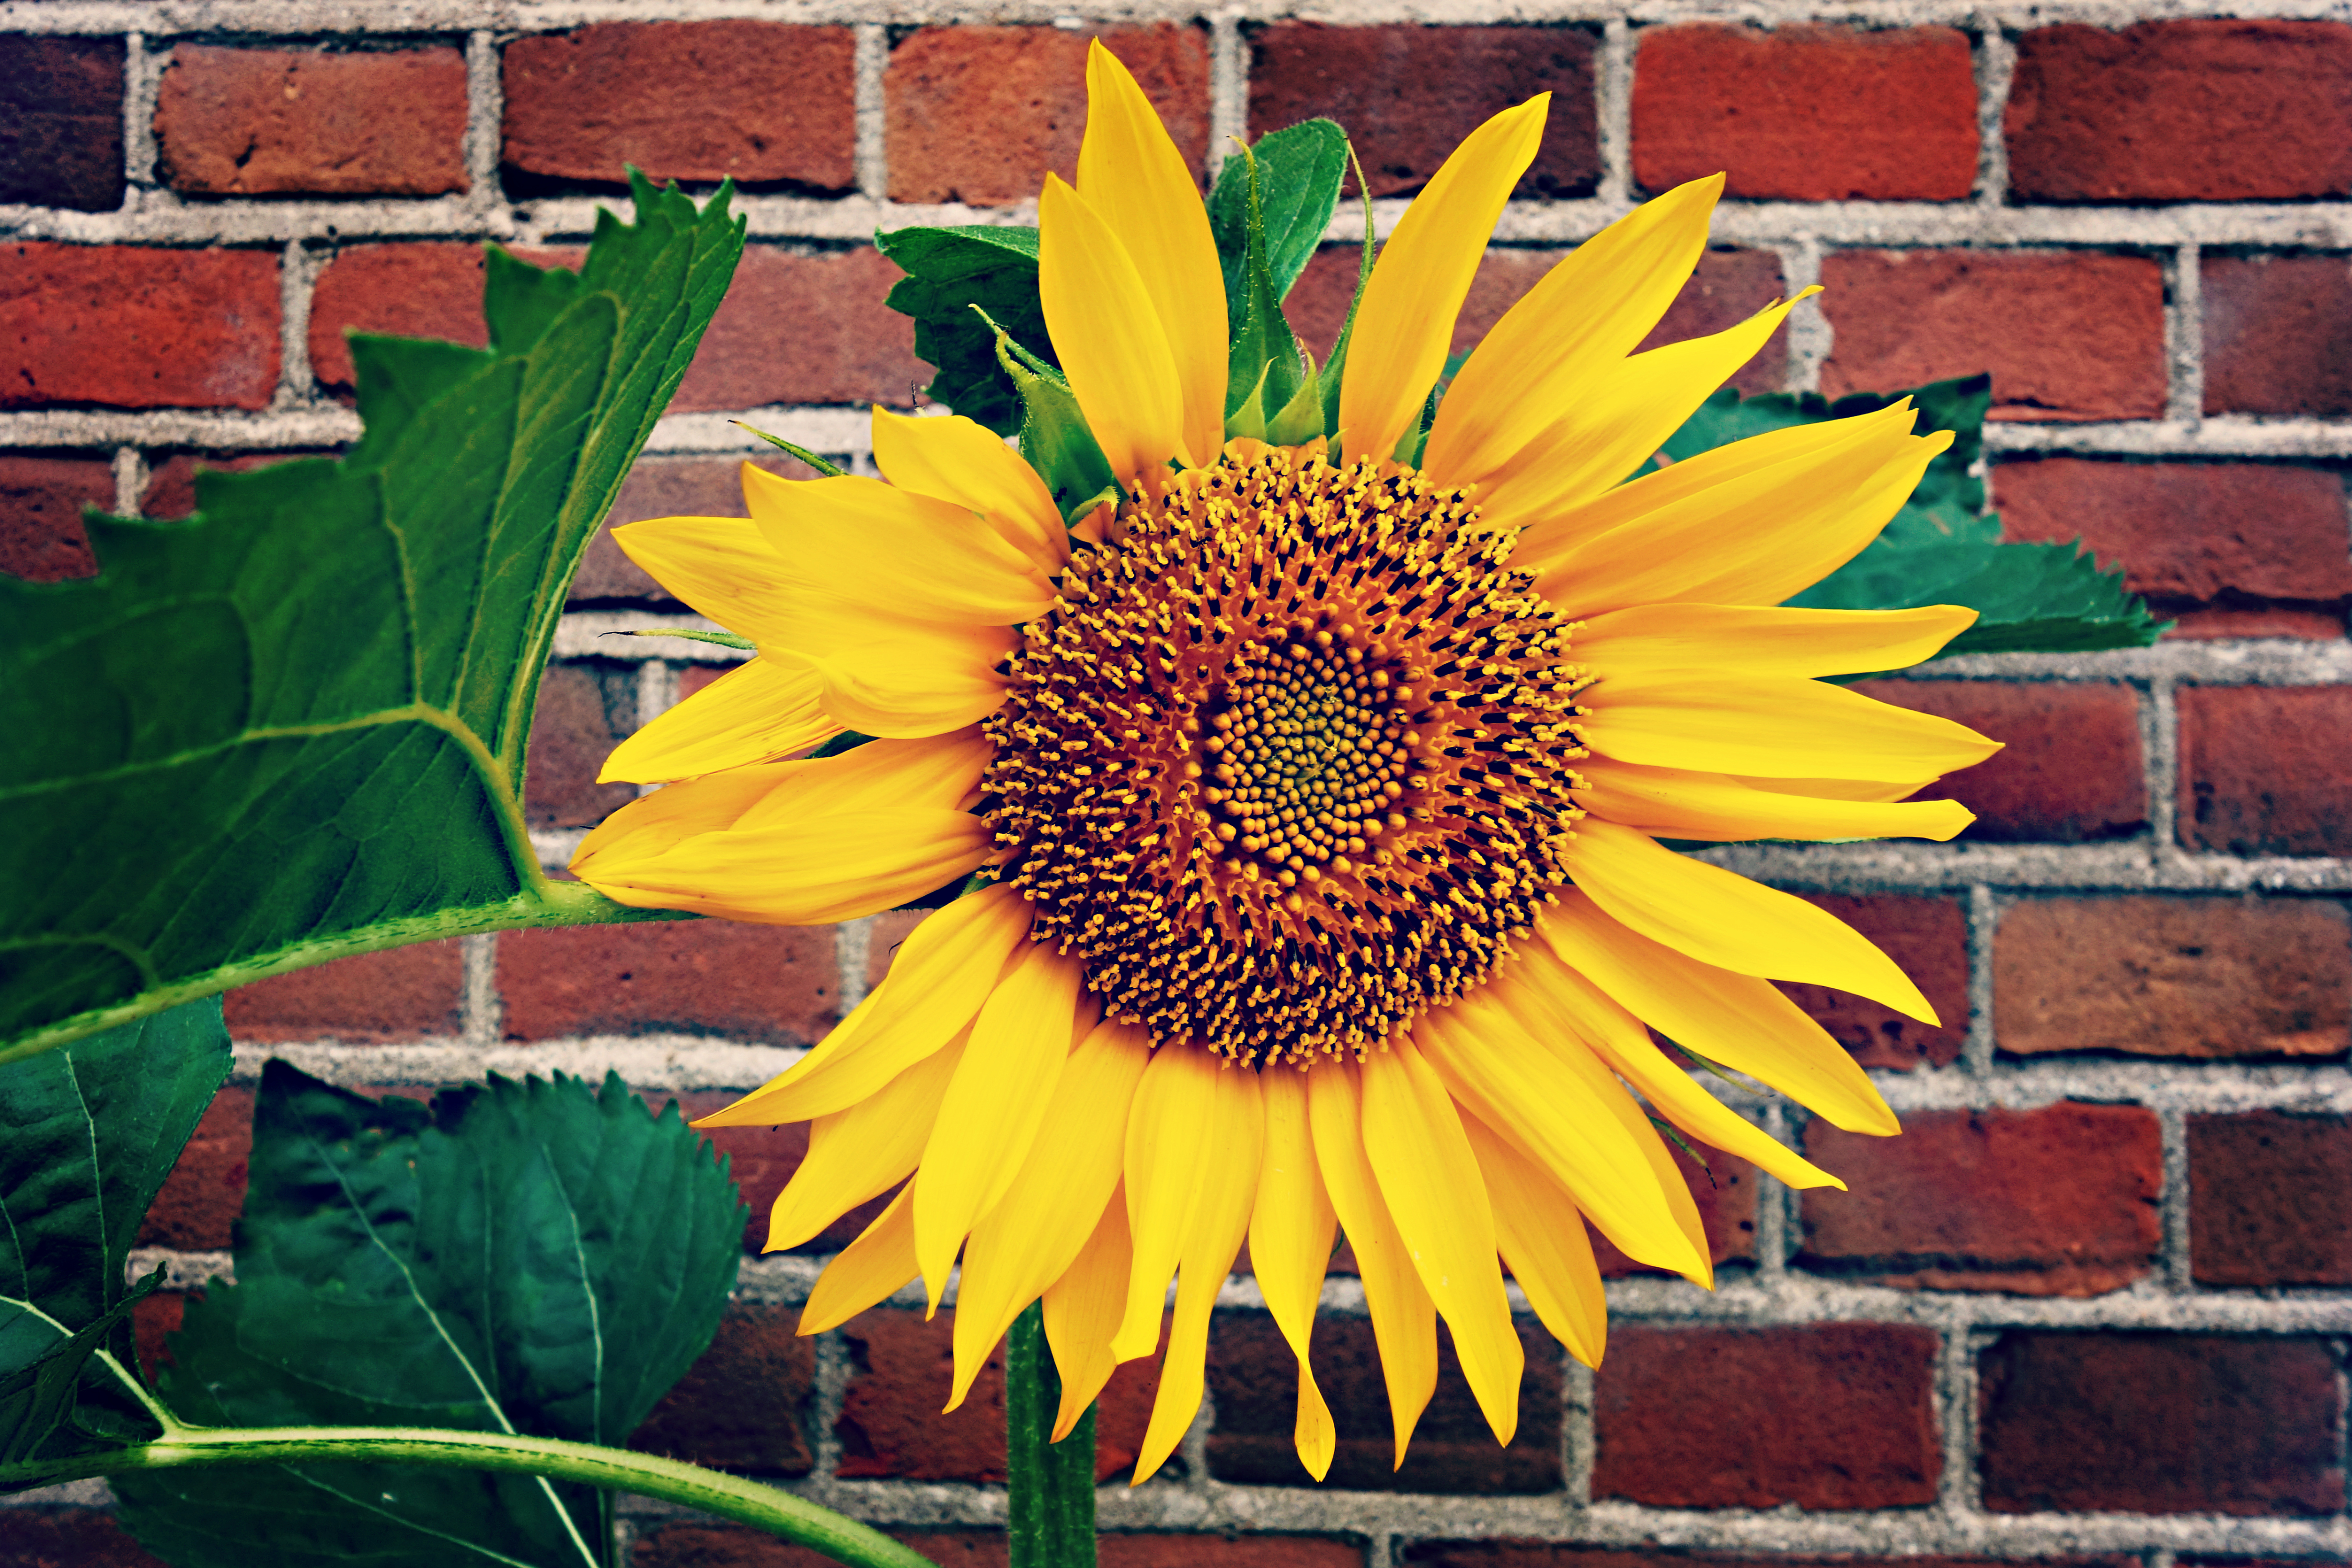 Make a sunflower candle holder